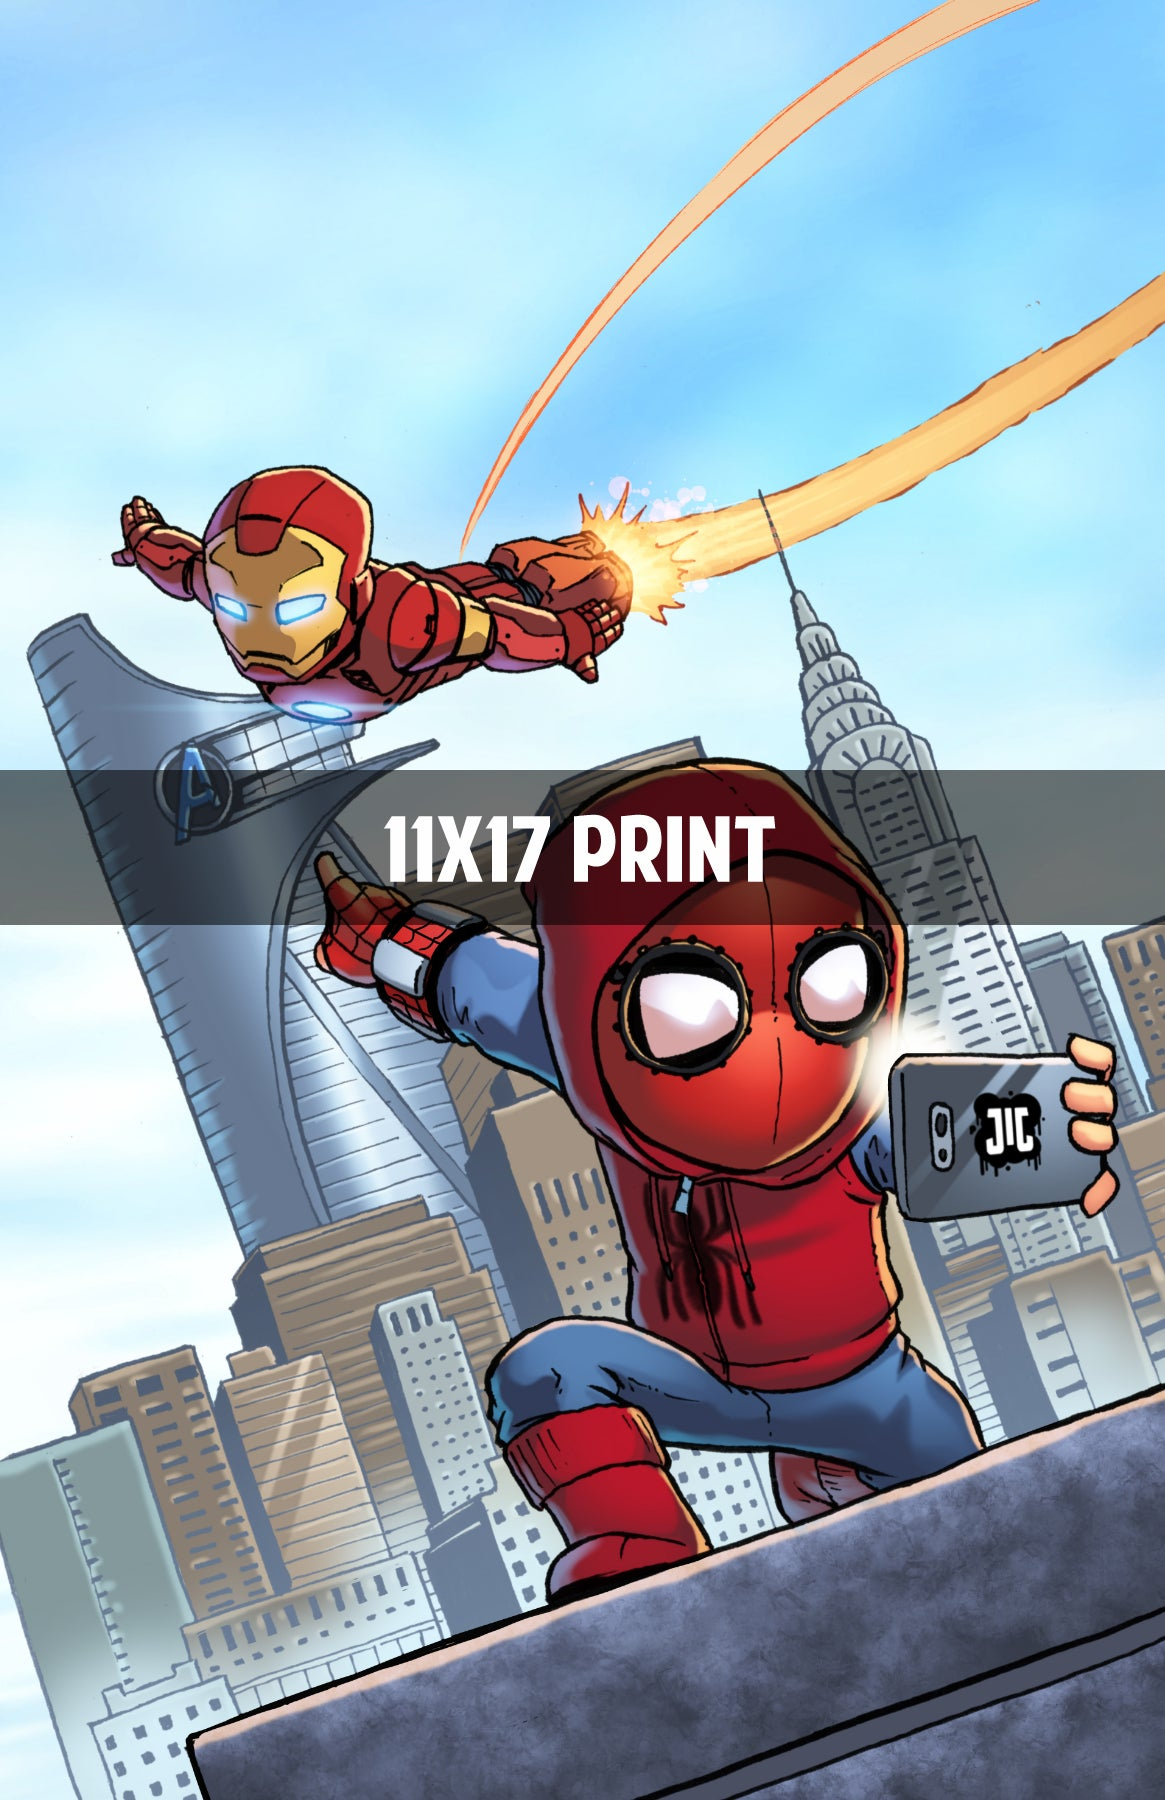 Spider-Man Homecoming - 11x17 Print